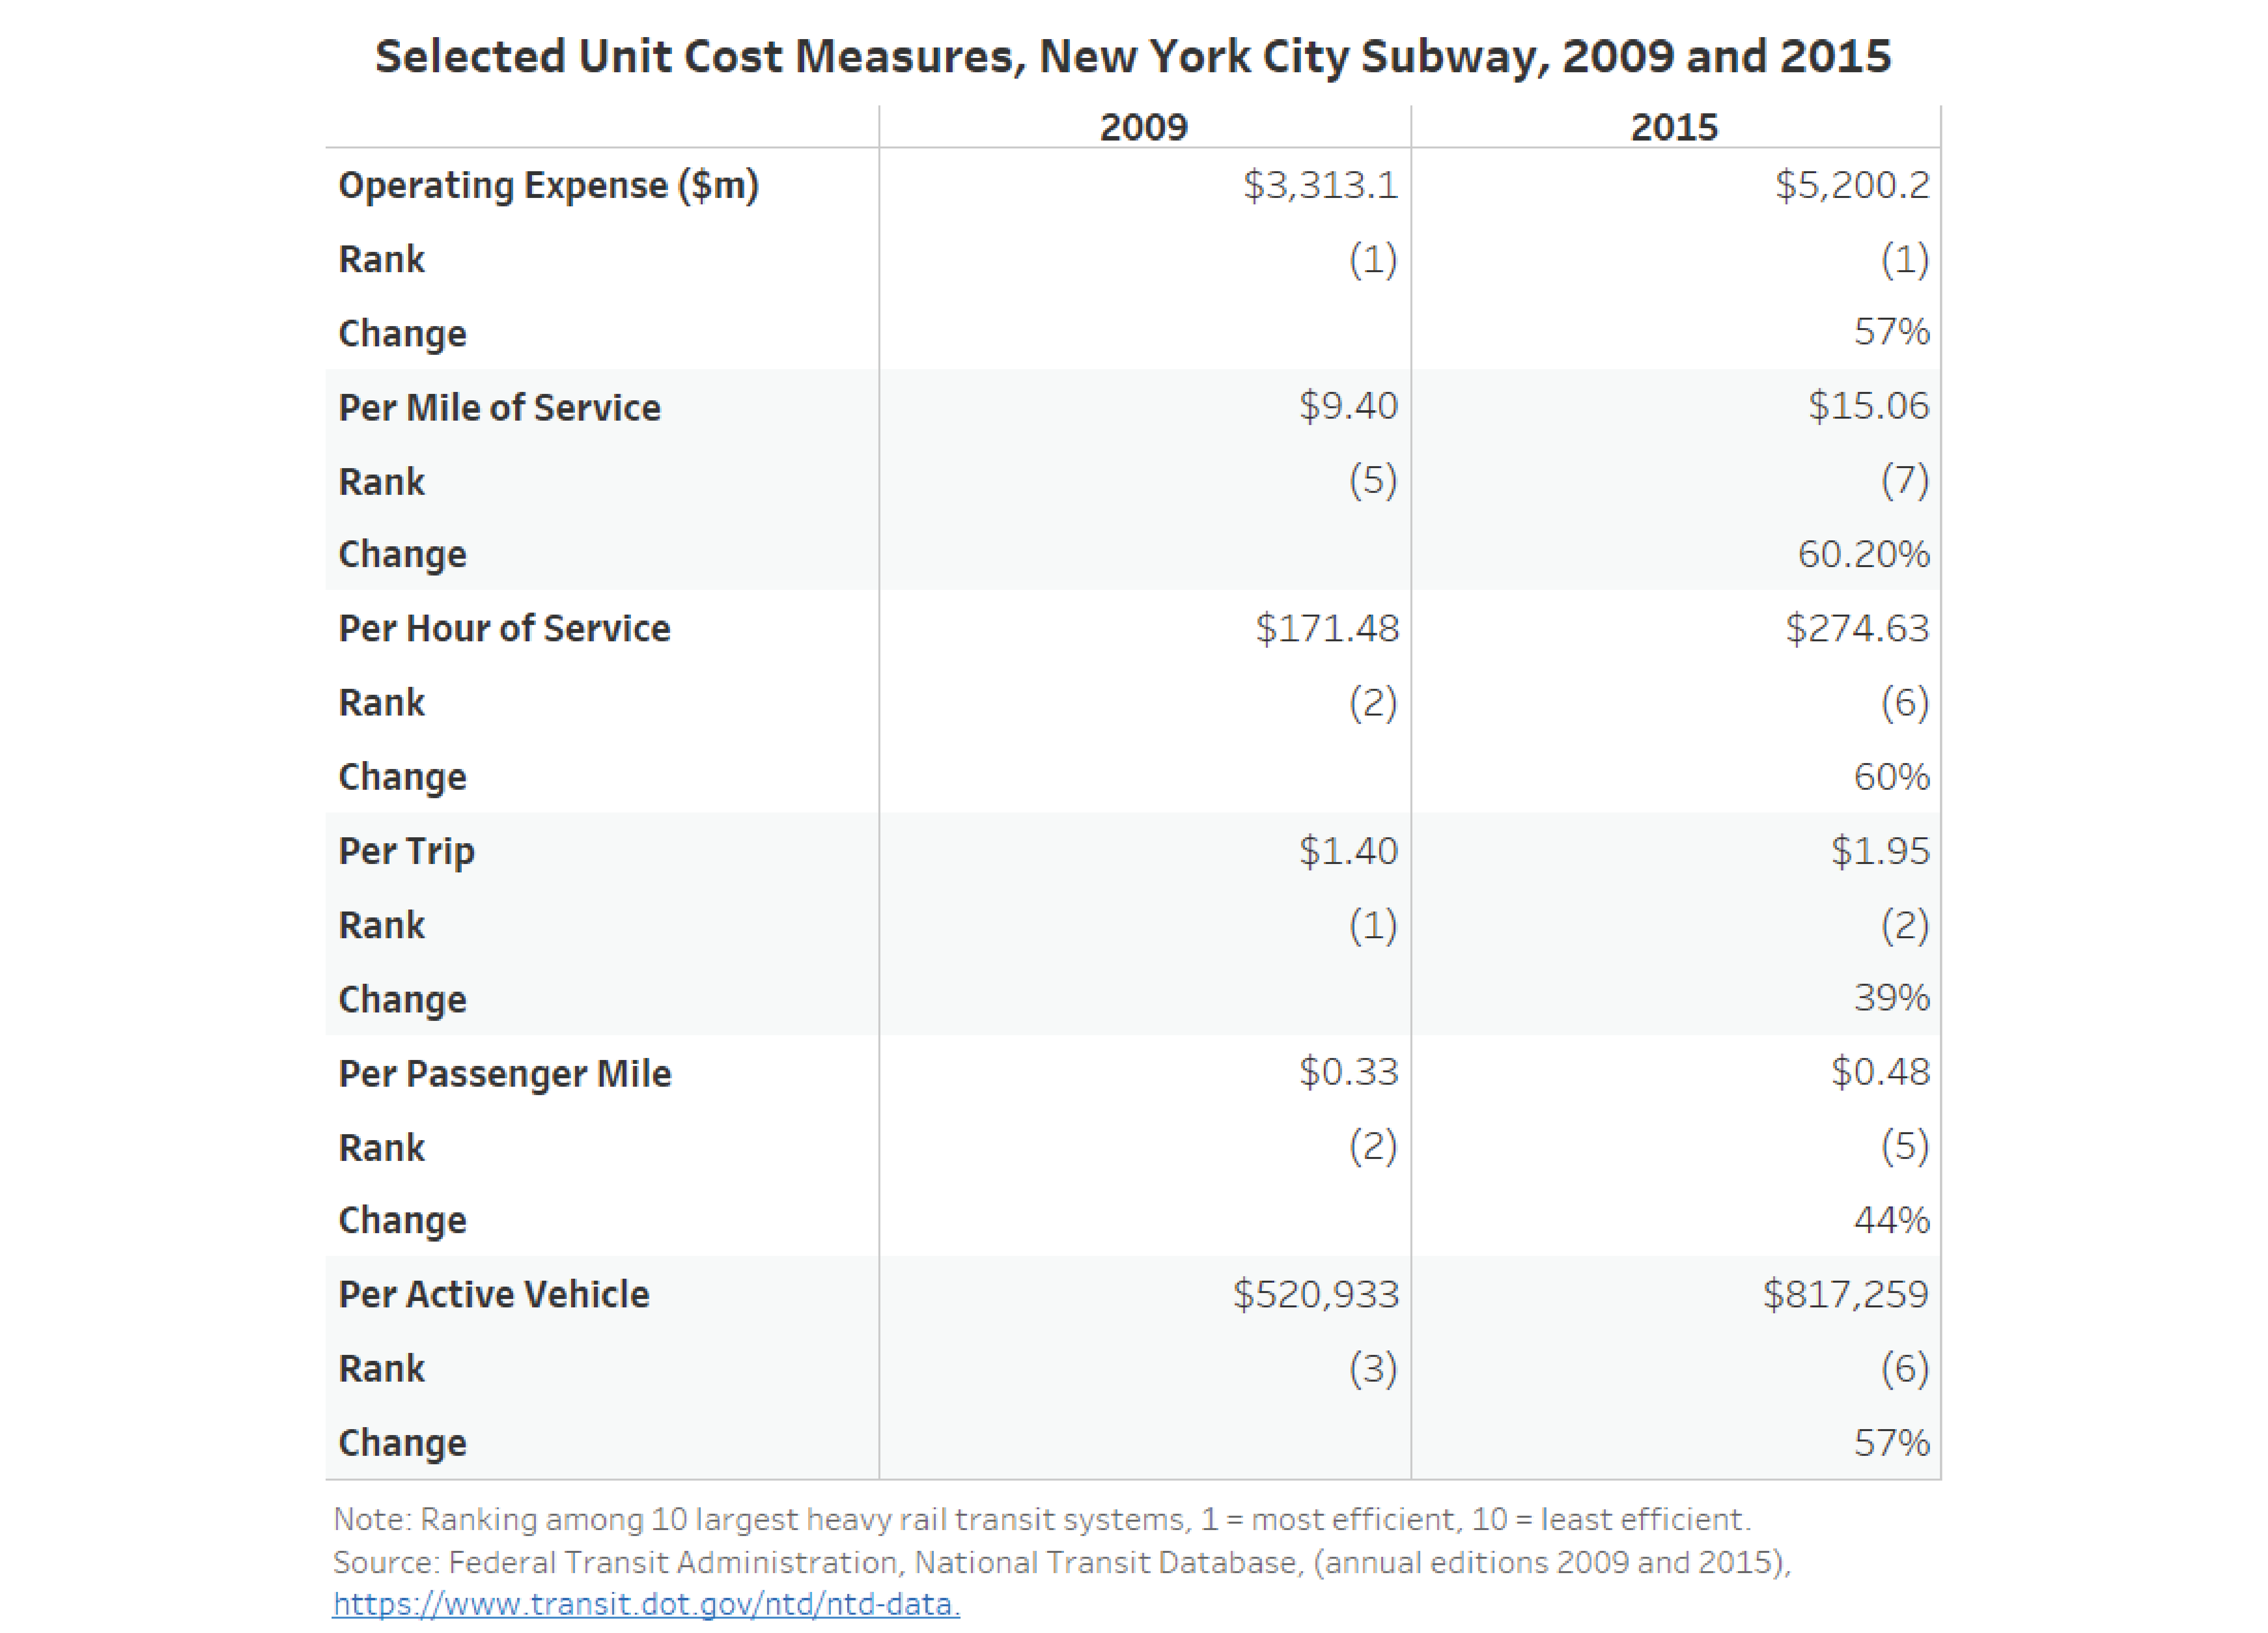 Selected Unit Cost Measures, New York City Subway, 2009 and 2015